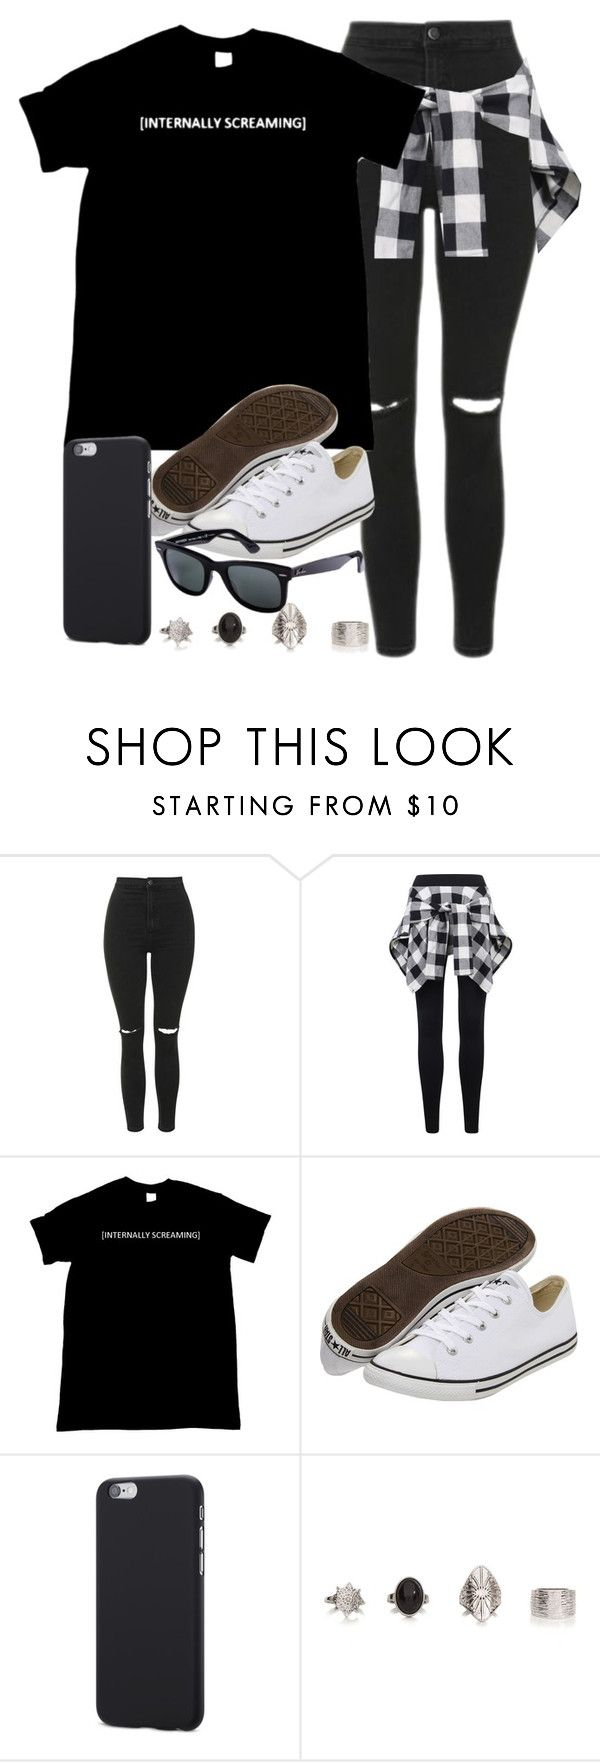 "Black Jeans Outfit Ideas : ""Style #11094"" by vany-alvarado ❤ liked on Polyvore featu ..."